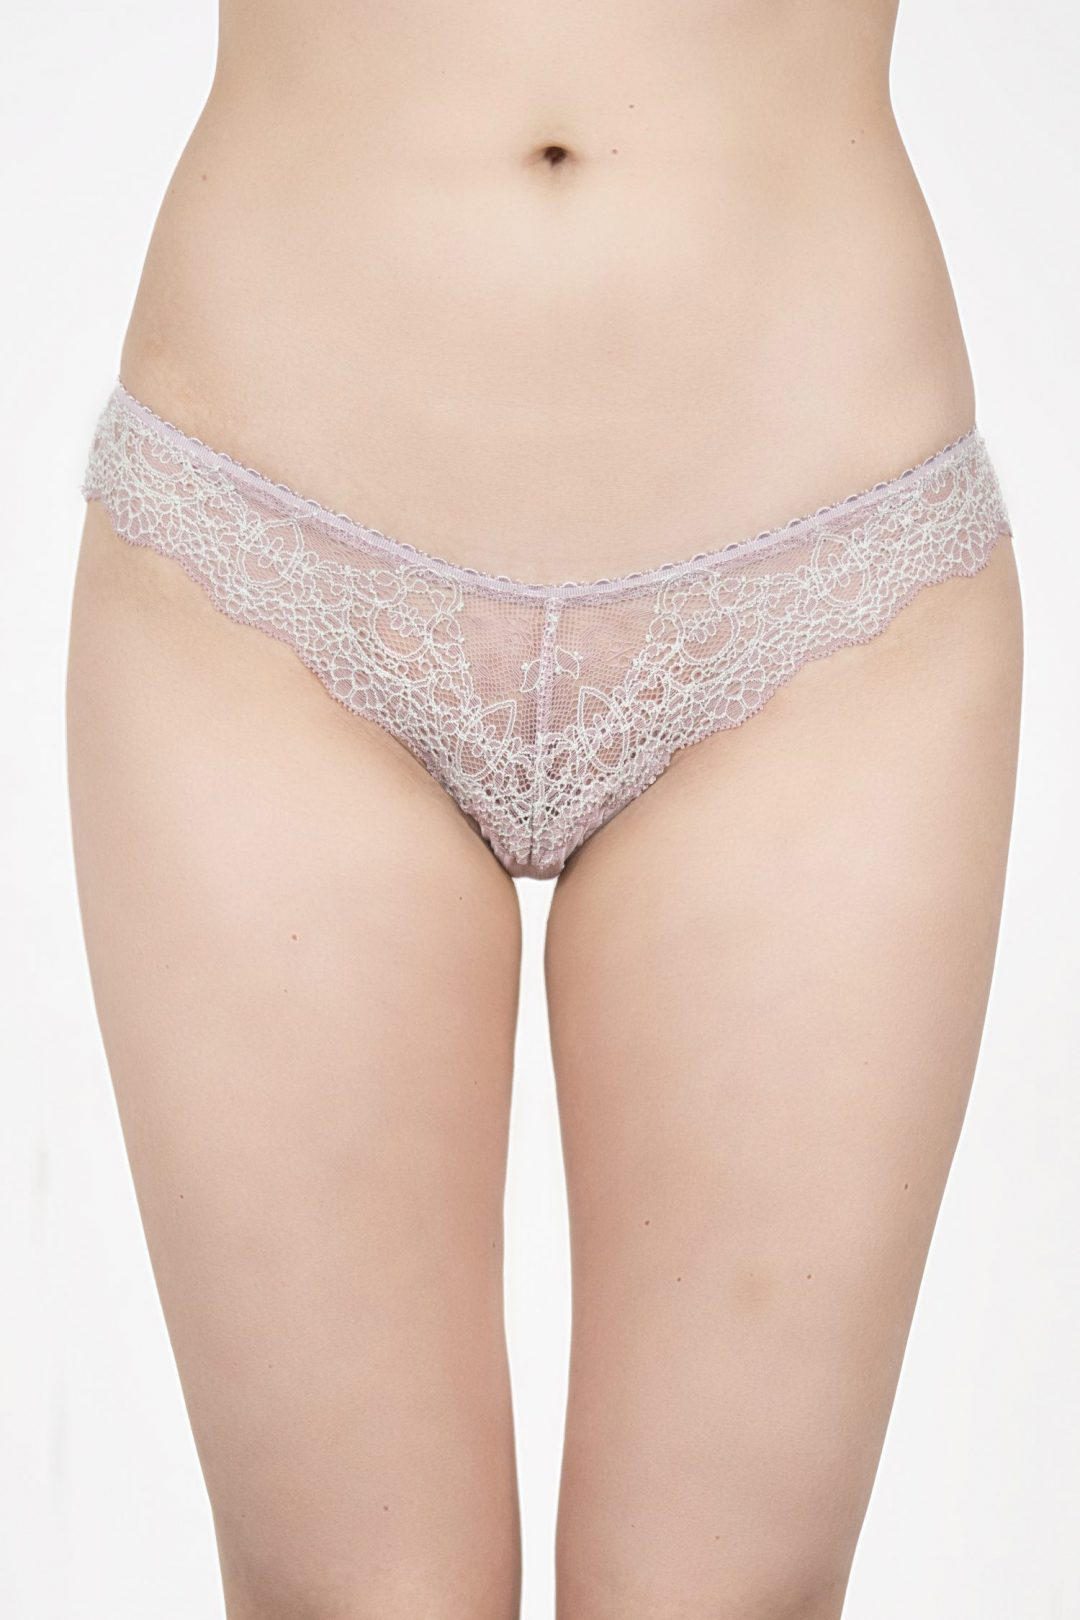 Image of a beautiful cute & sexy lilac lace women's thongs | IDentity Lingerie UK